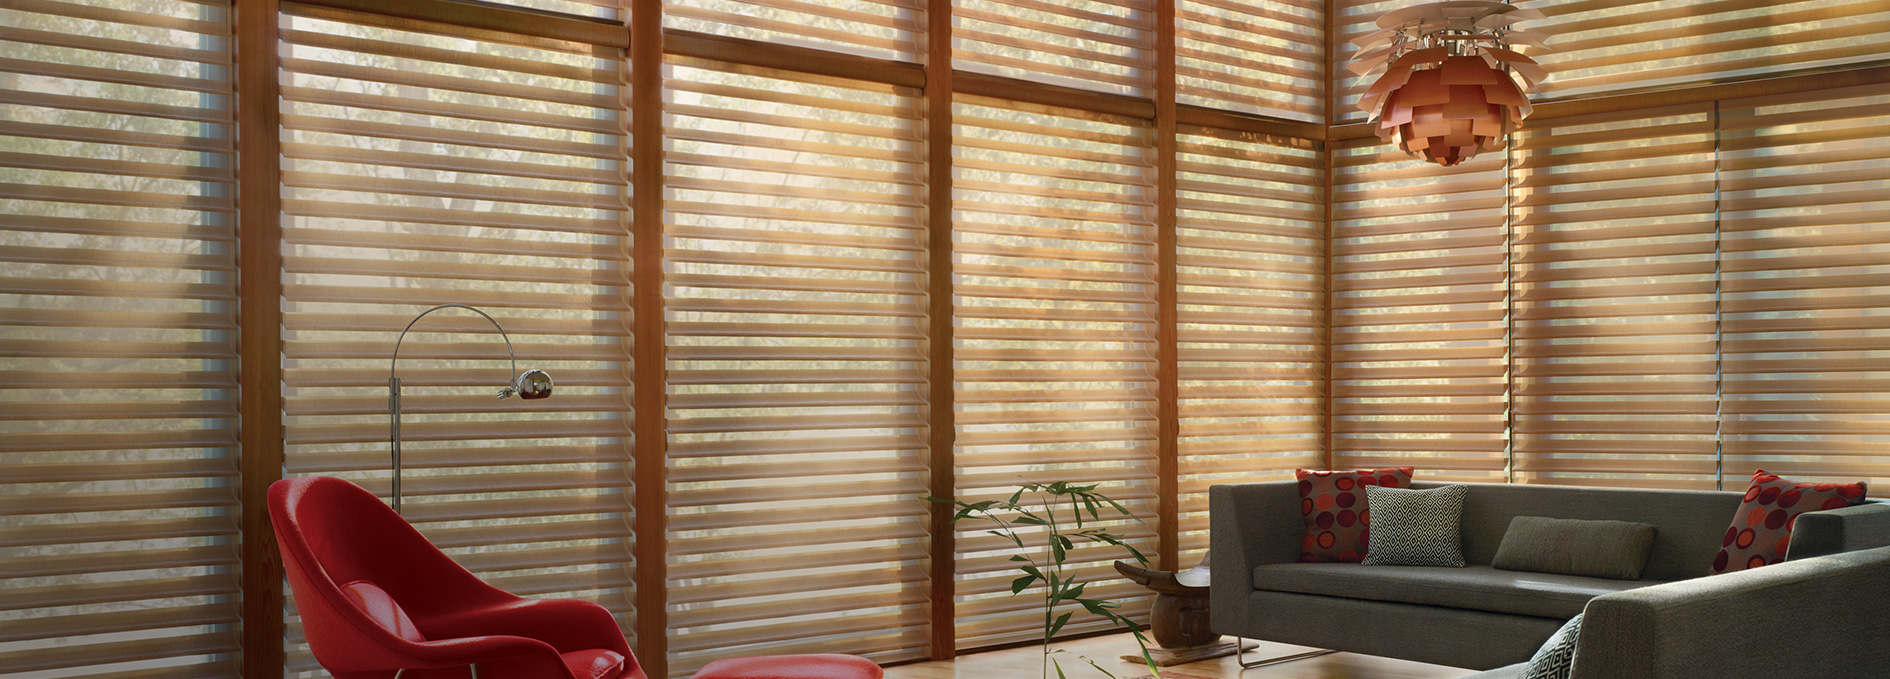 window treatments bay windows corner windows bow windows bay and corner windows